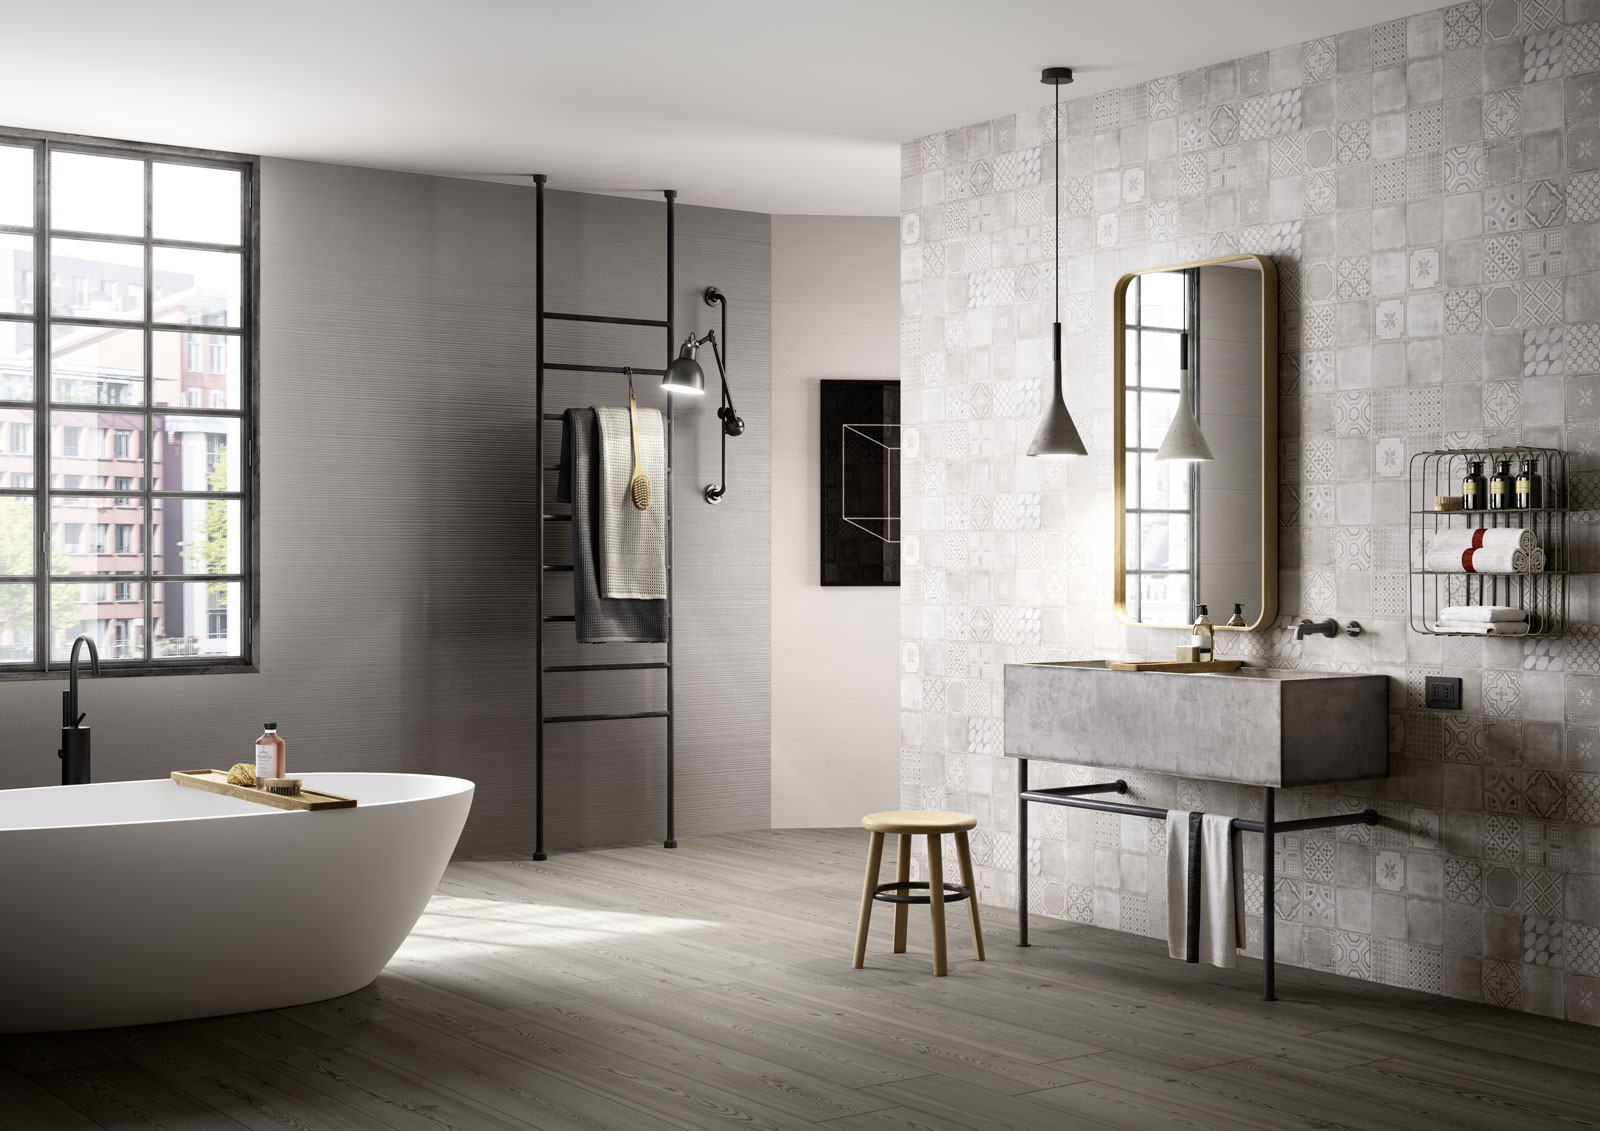 Baños Azulejos Beige:Marazzi Porcelain Tile in Bathrooms